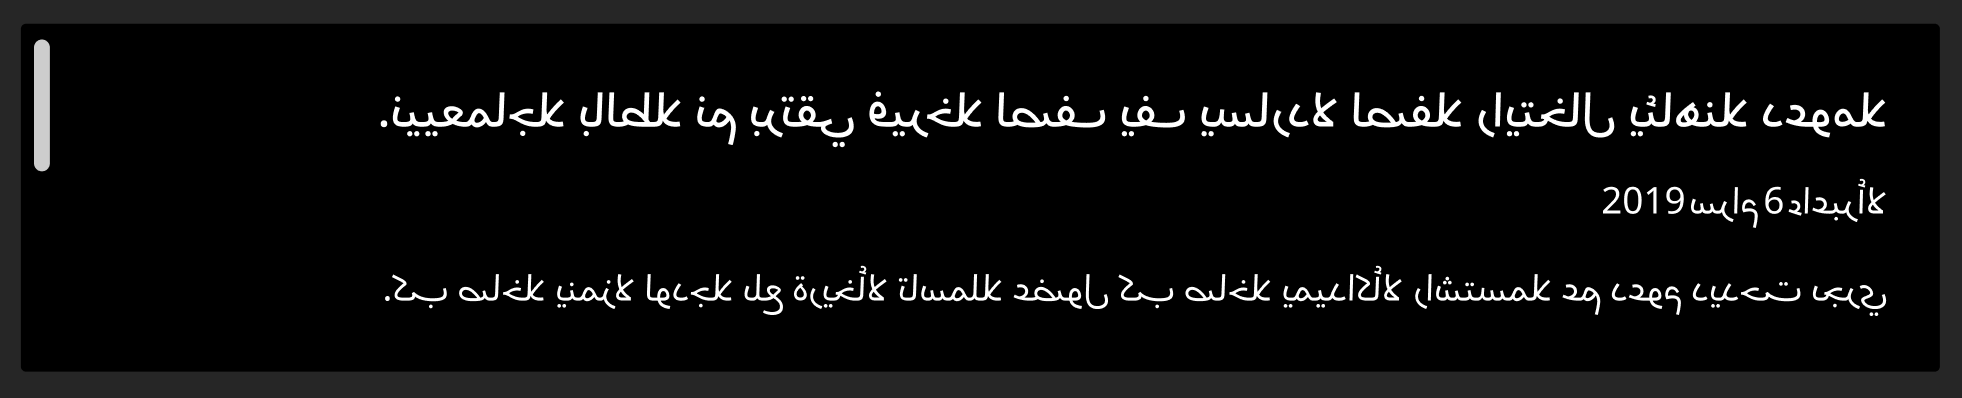 A text box with Arabic writing. The scroll bar for the text box is placed on the left.